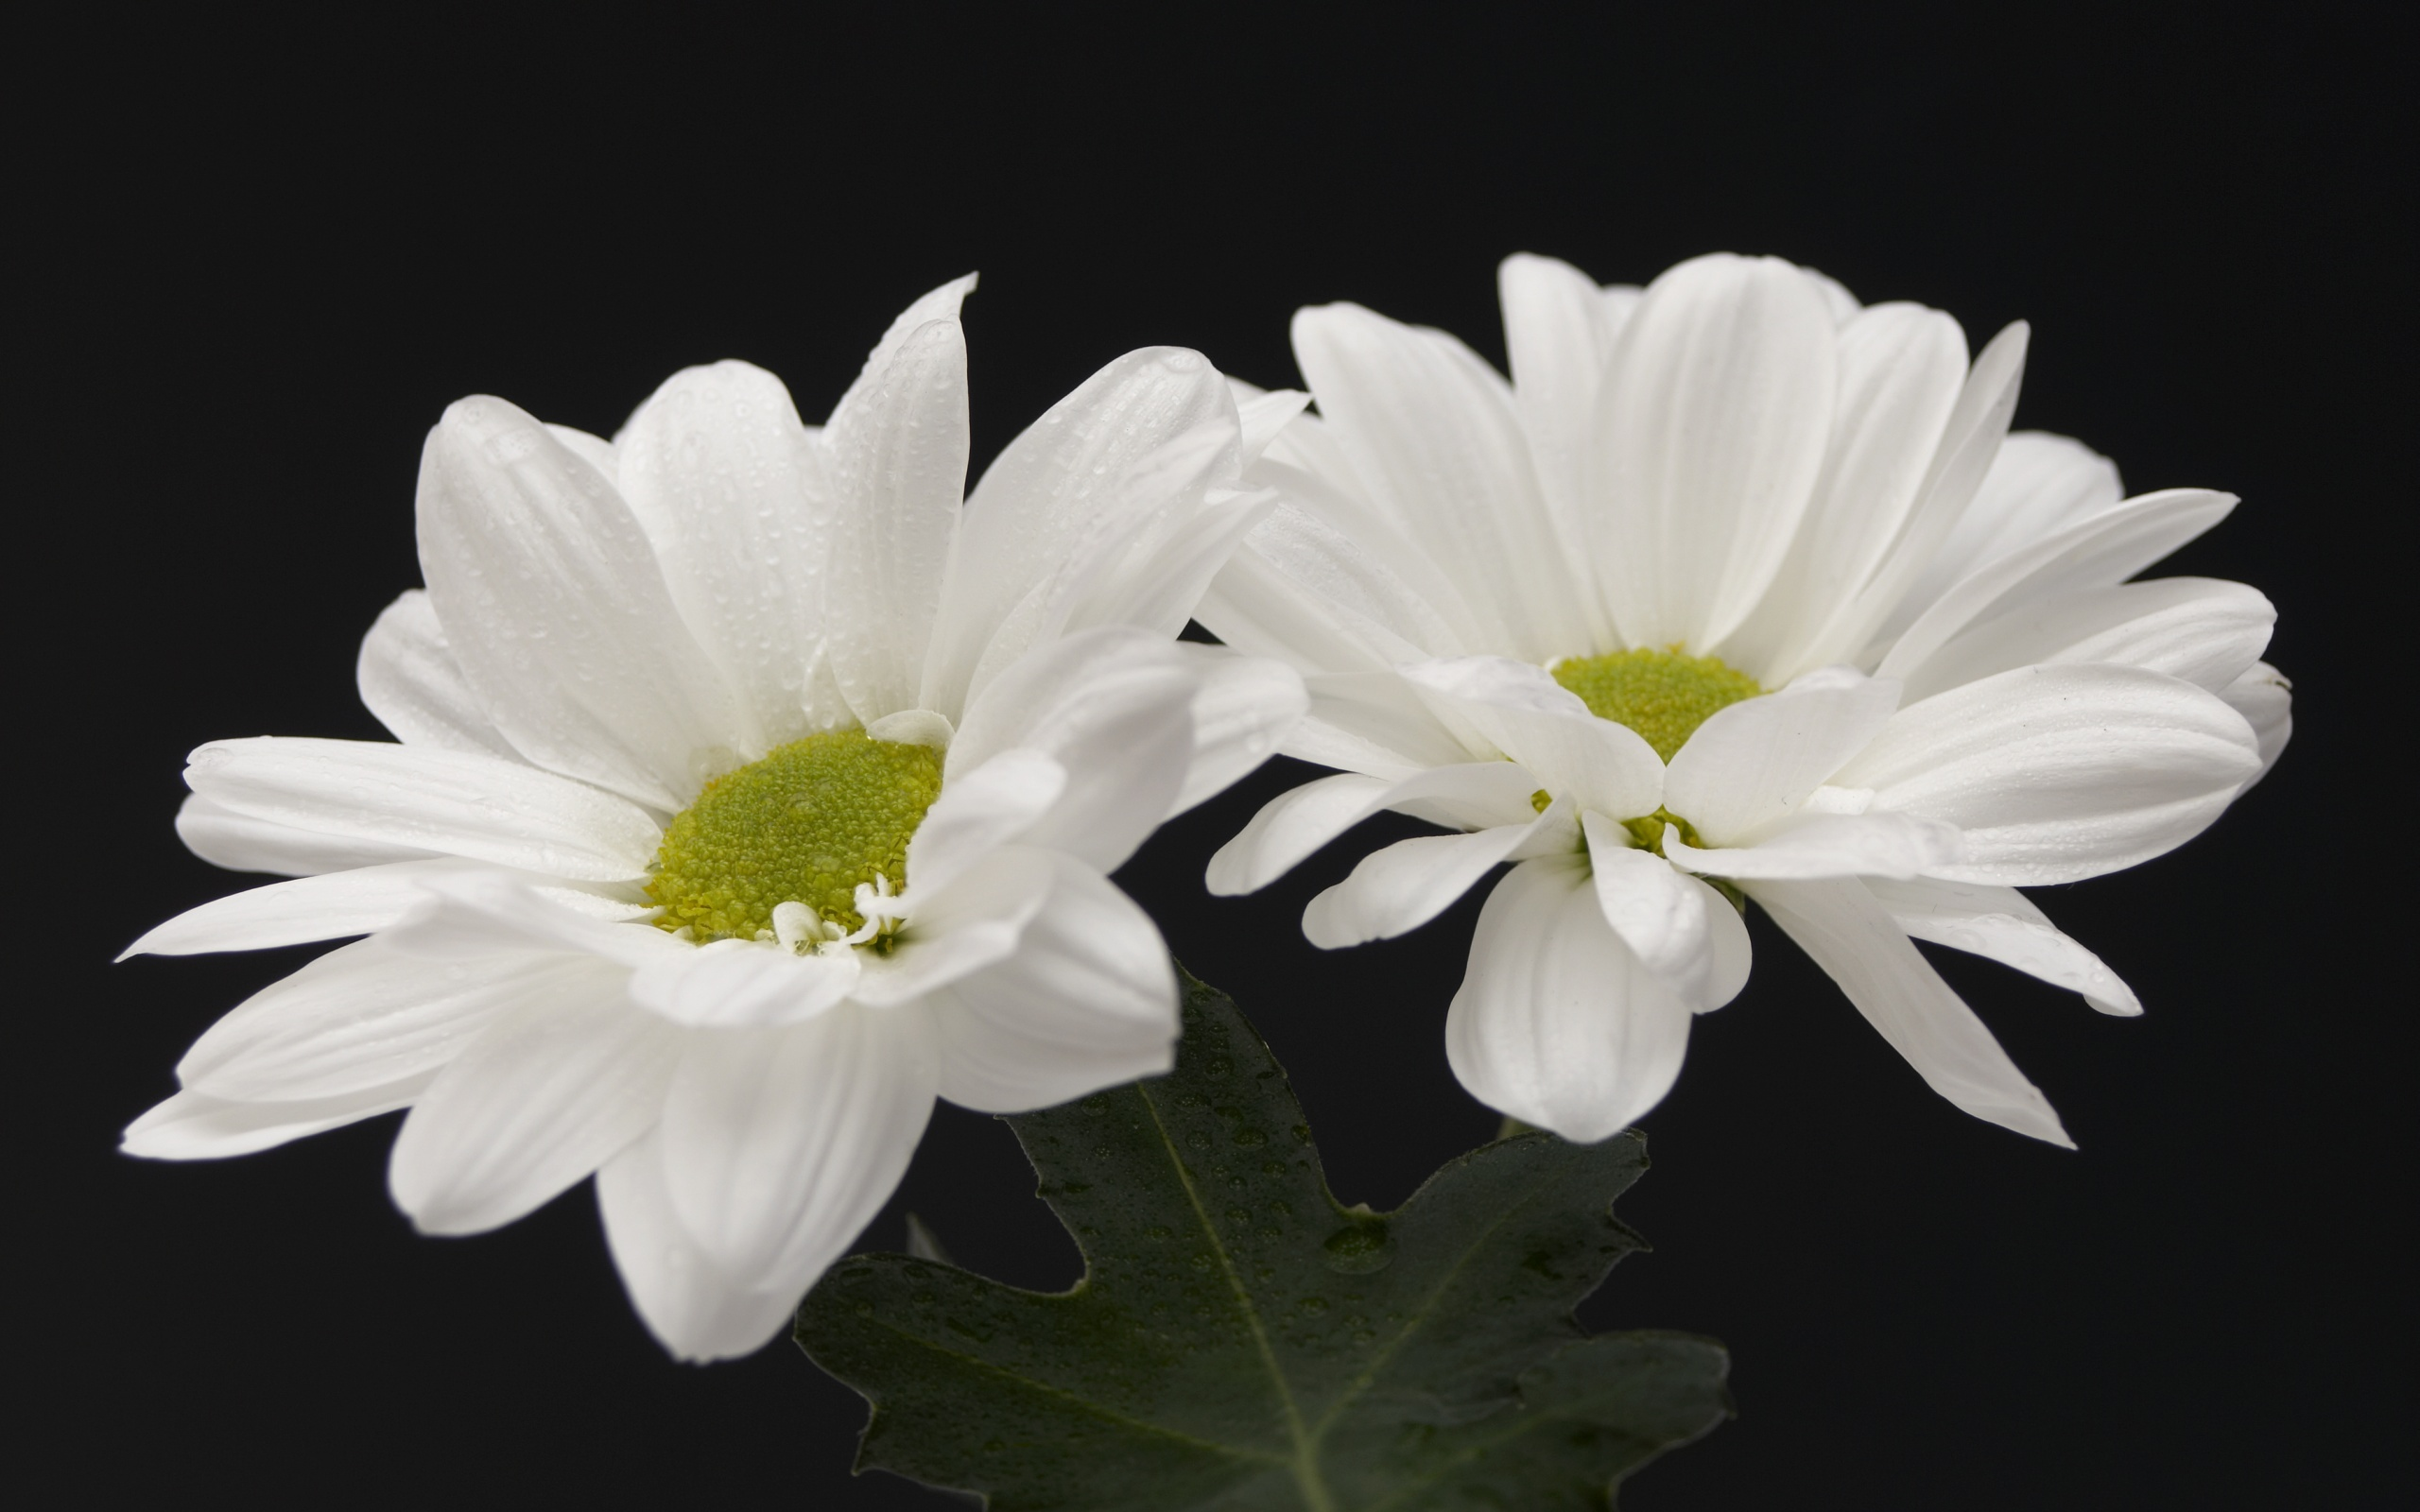 Download white flowers 7720 2560x1600 px high resolution wallpaper white flowers 7720 mightylinksfo